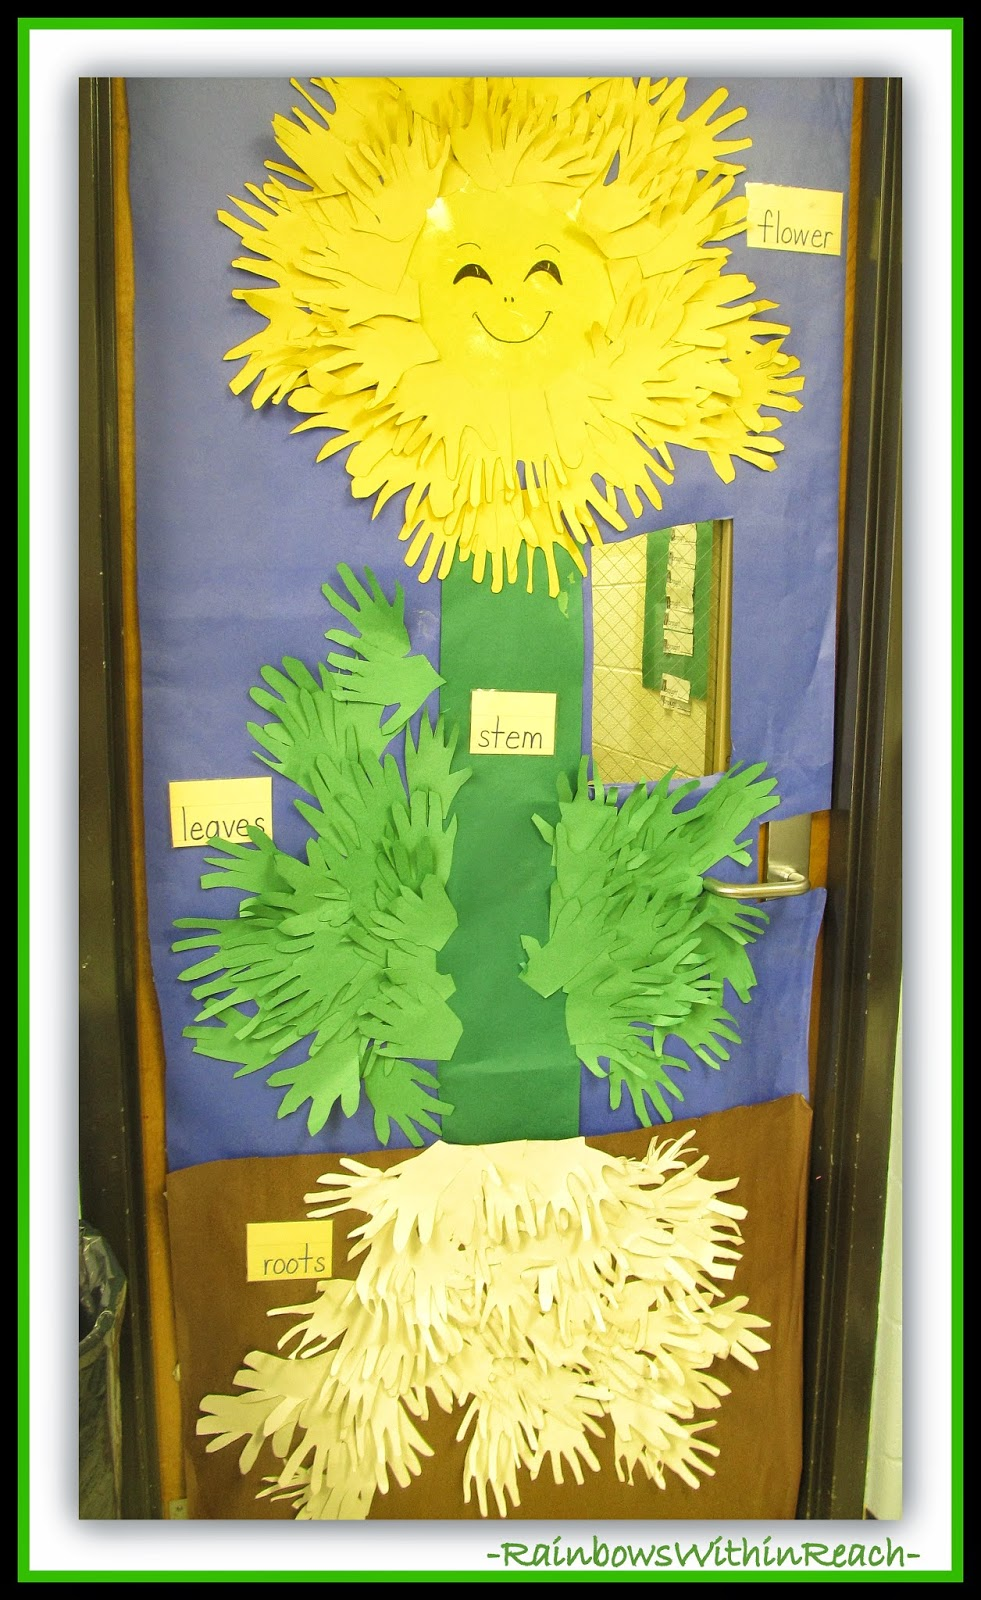 Classroom Door Decorated with Hands Creating a Flower with Roots at RainbowsWithinReach